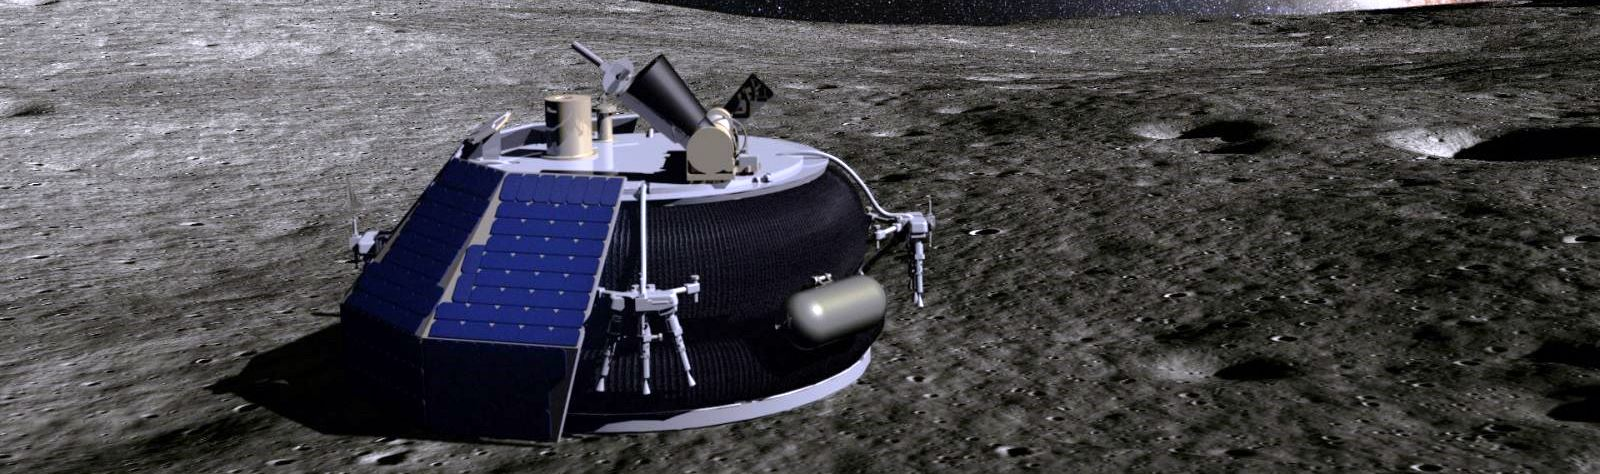 Artist's depiction of Moon Express' MX-1 spacecraft on the surface of the Moon. Image Credit: Moon Express posted on SpaceFlight Insider